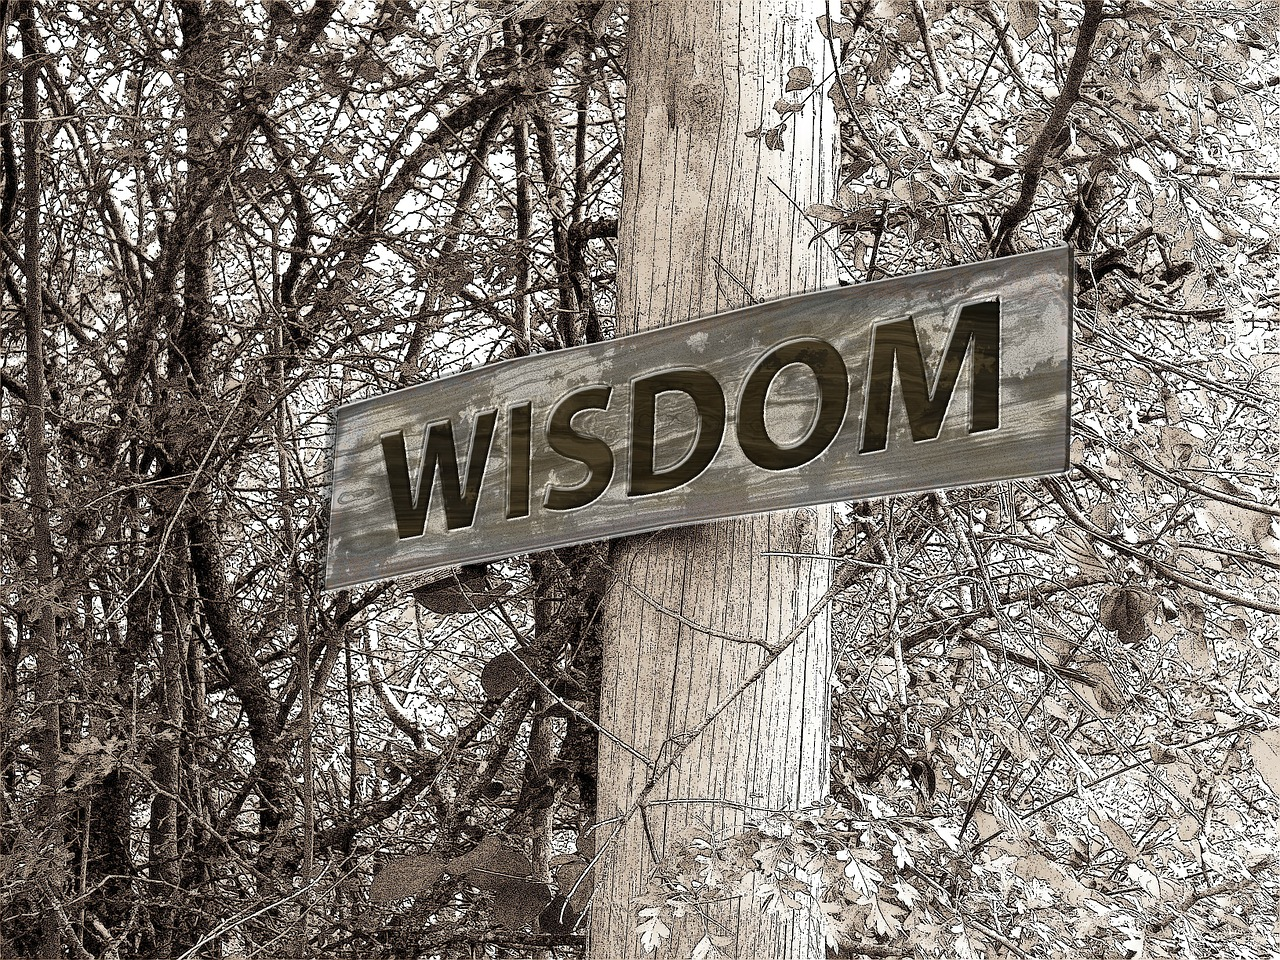 Wisdom sign on a tree in the woods